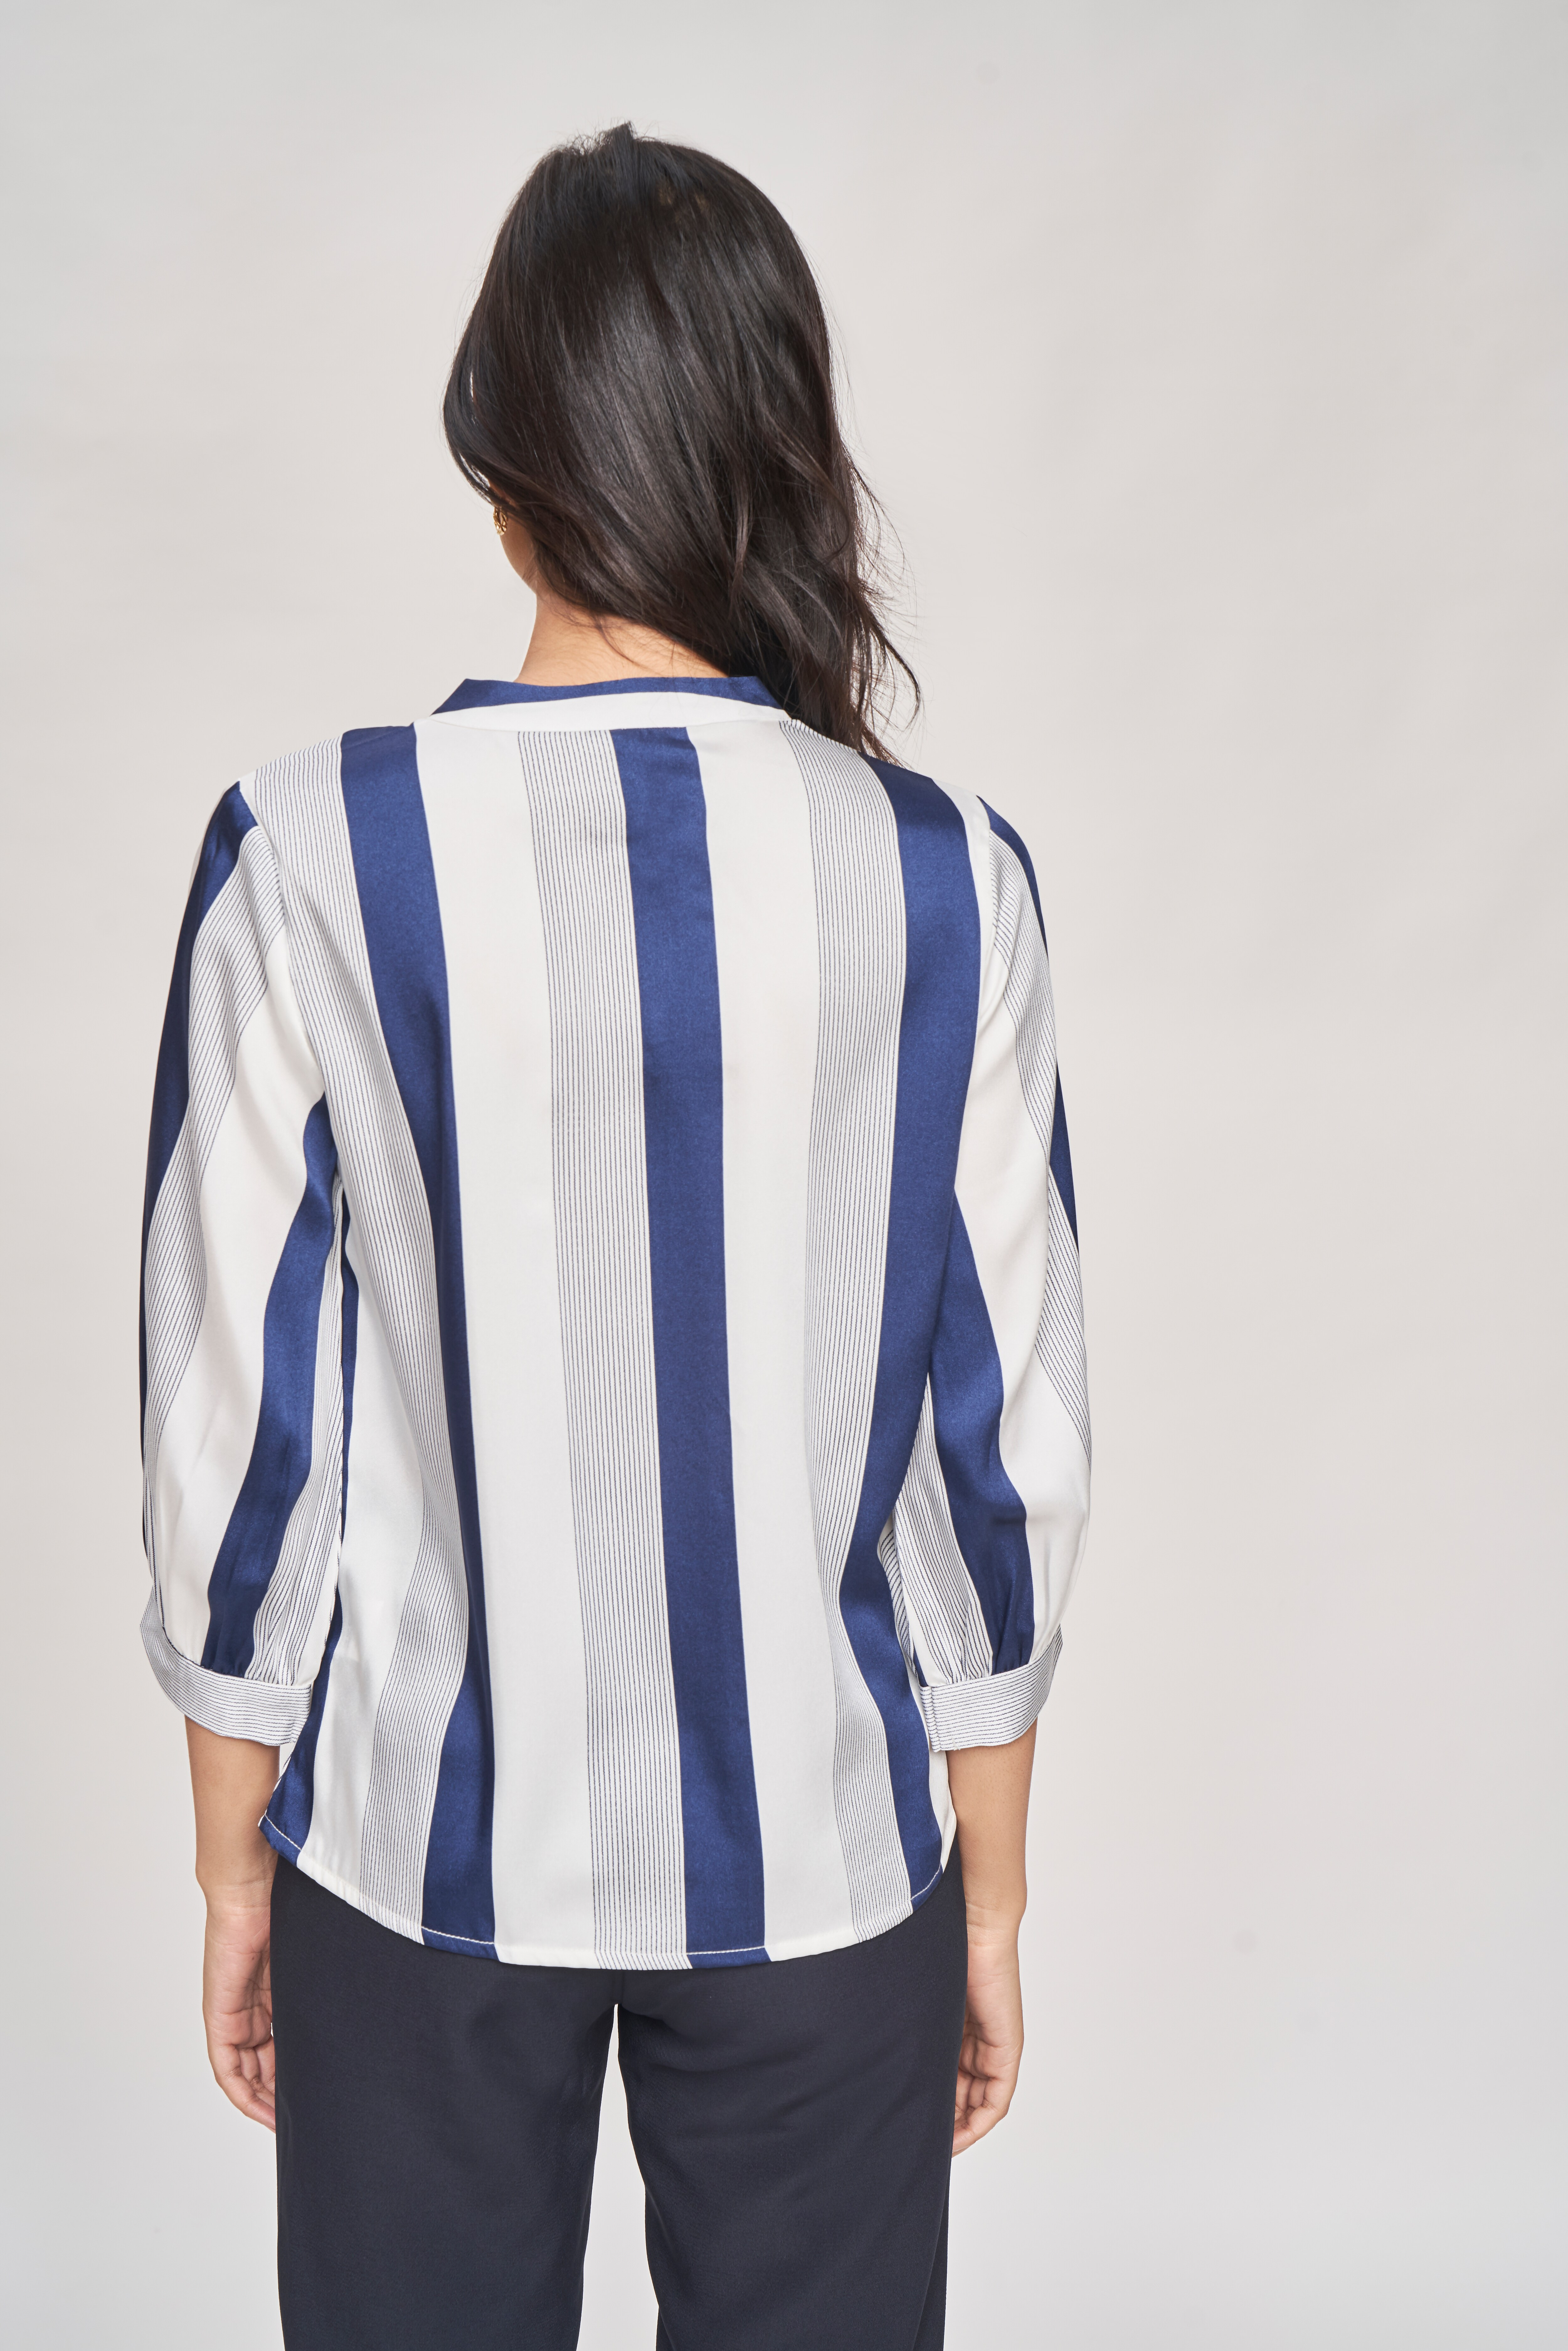 AND   Blue Striped Printed A-Line Top